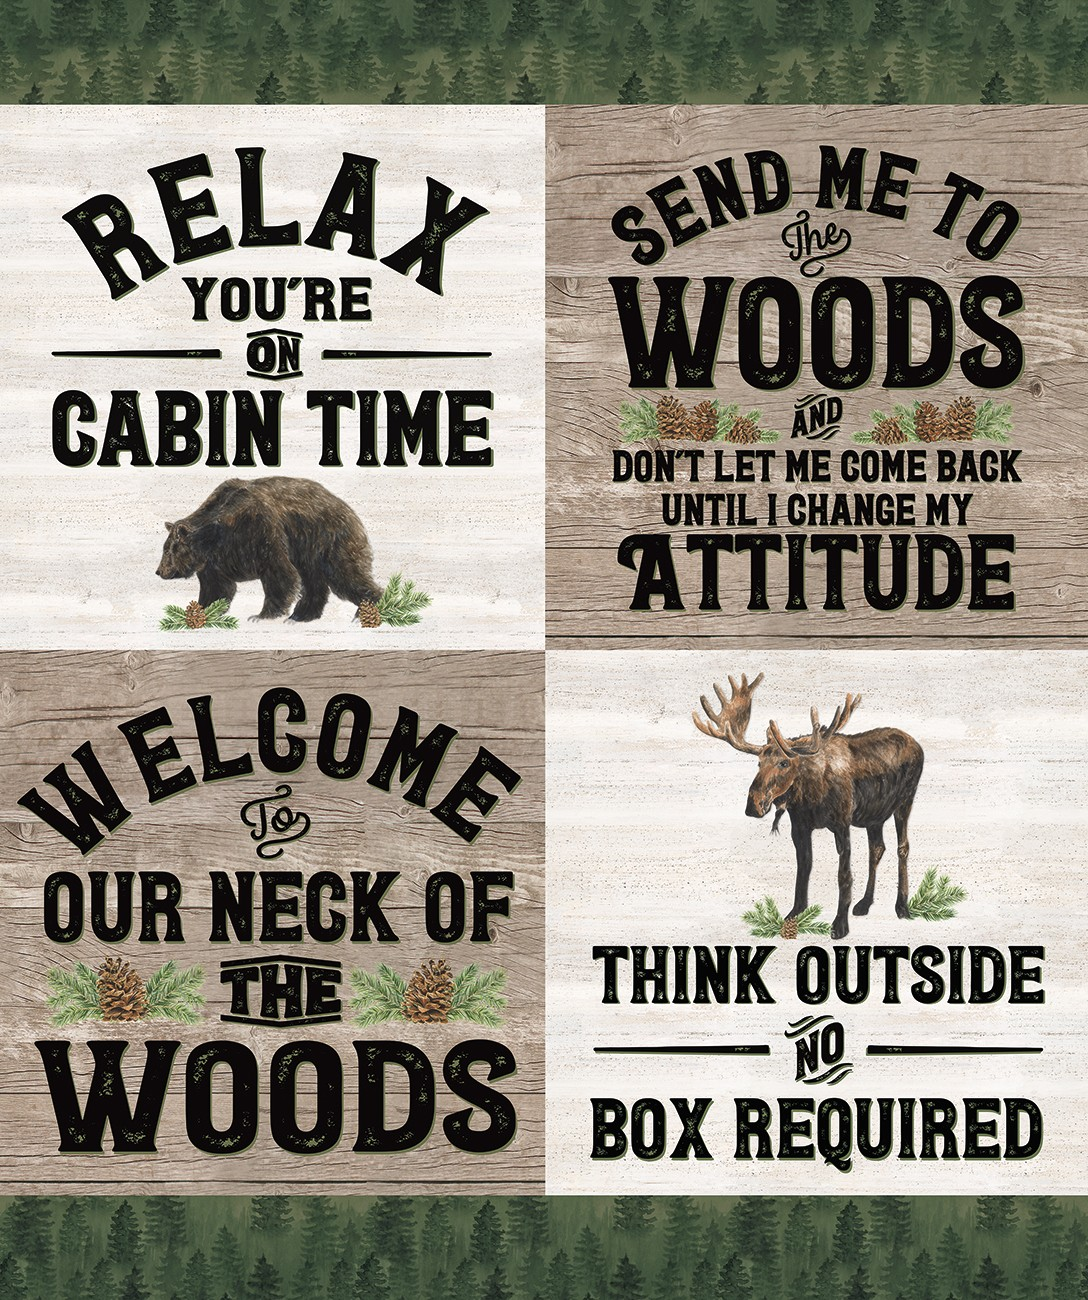 Send Me to the Woods